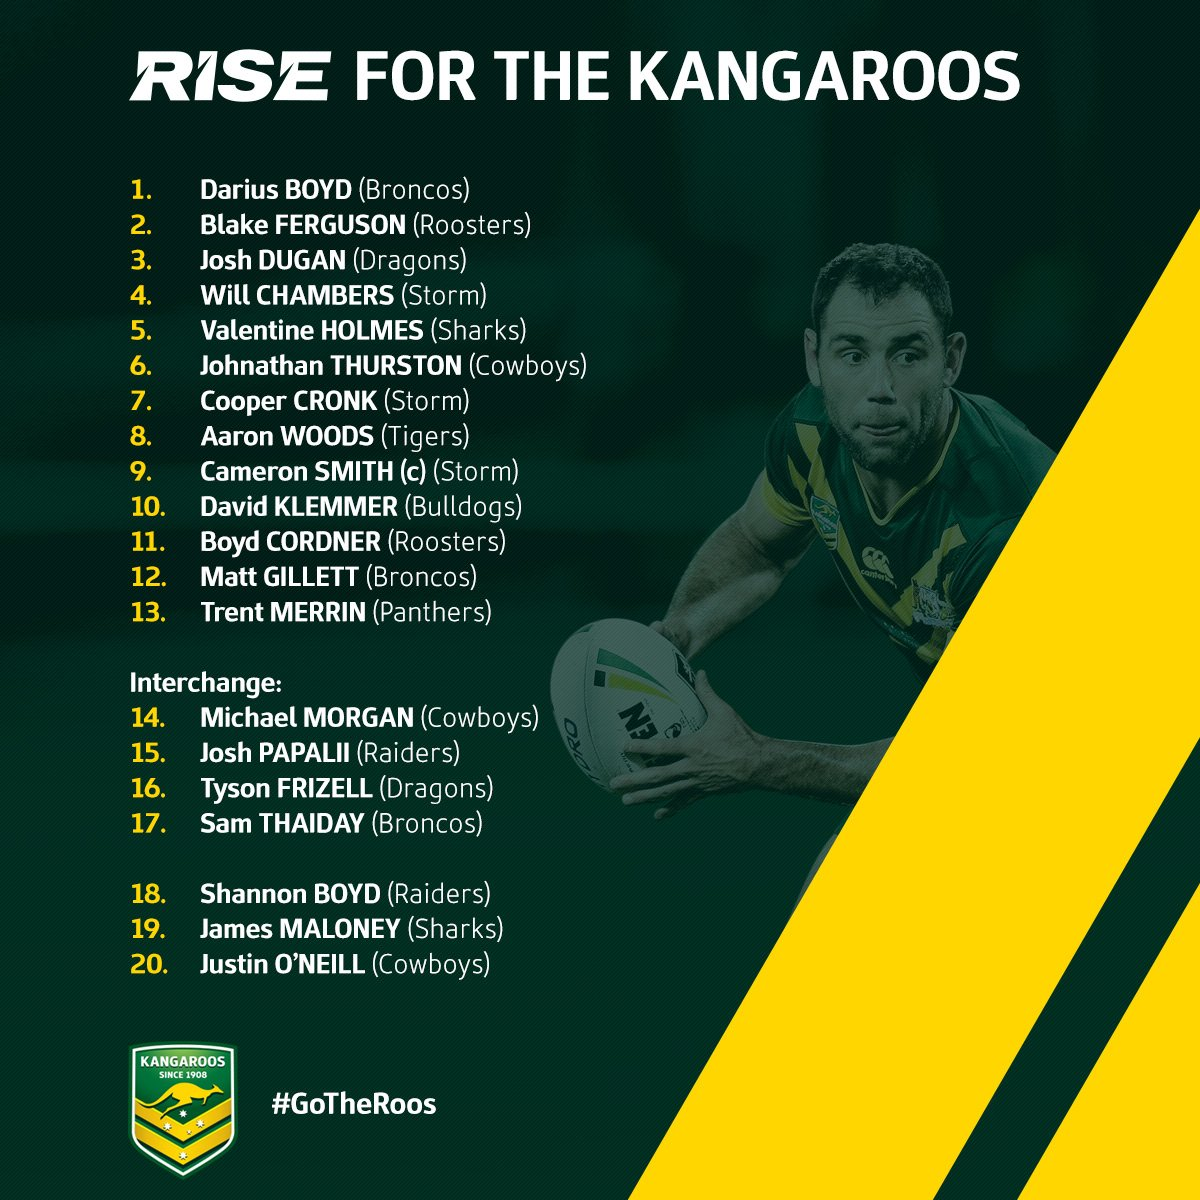 Here is your Kangaroos squad for the upcoming #RoosKiwis Test Match in Canberra on May 5!  #GoTheRoos https://t.co/ZJRMJC50ON